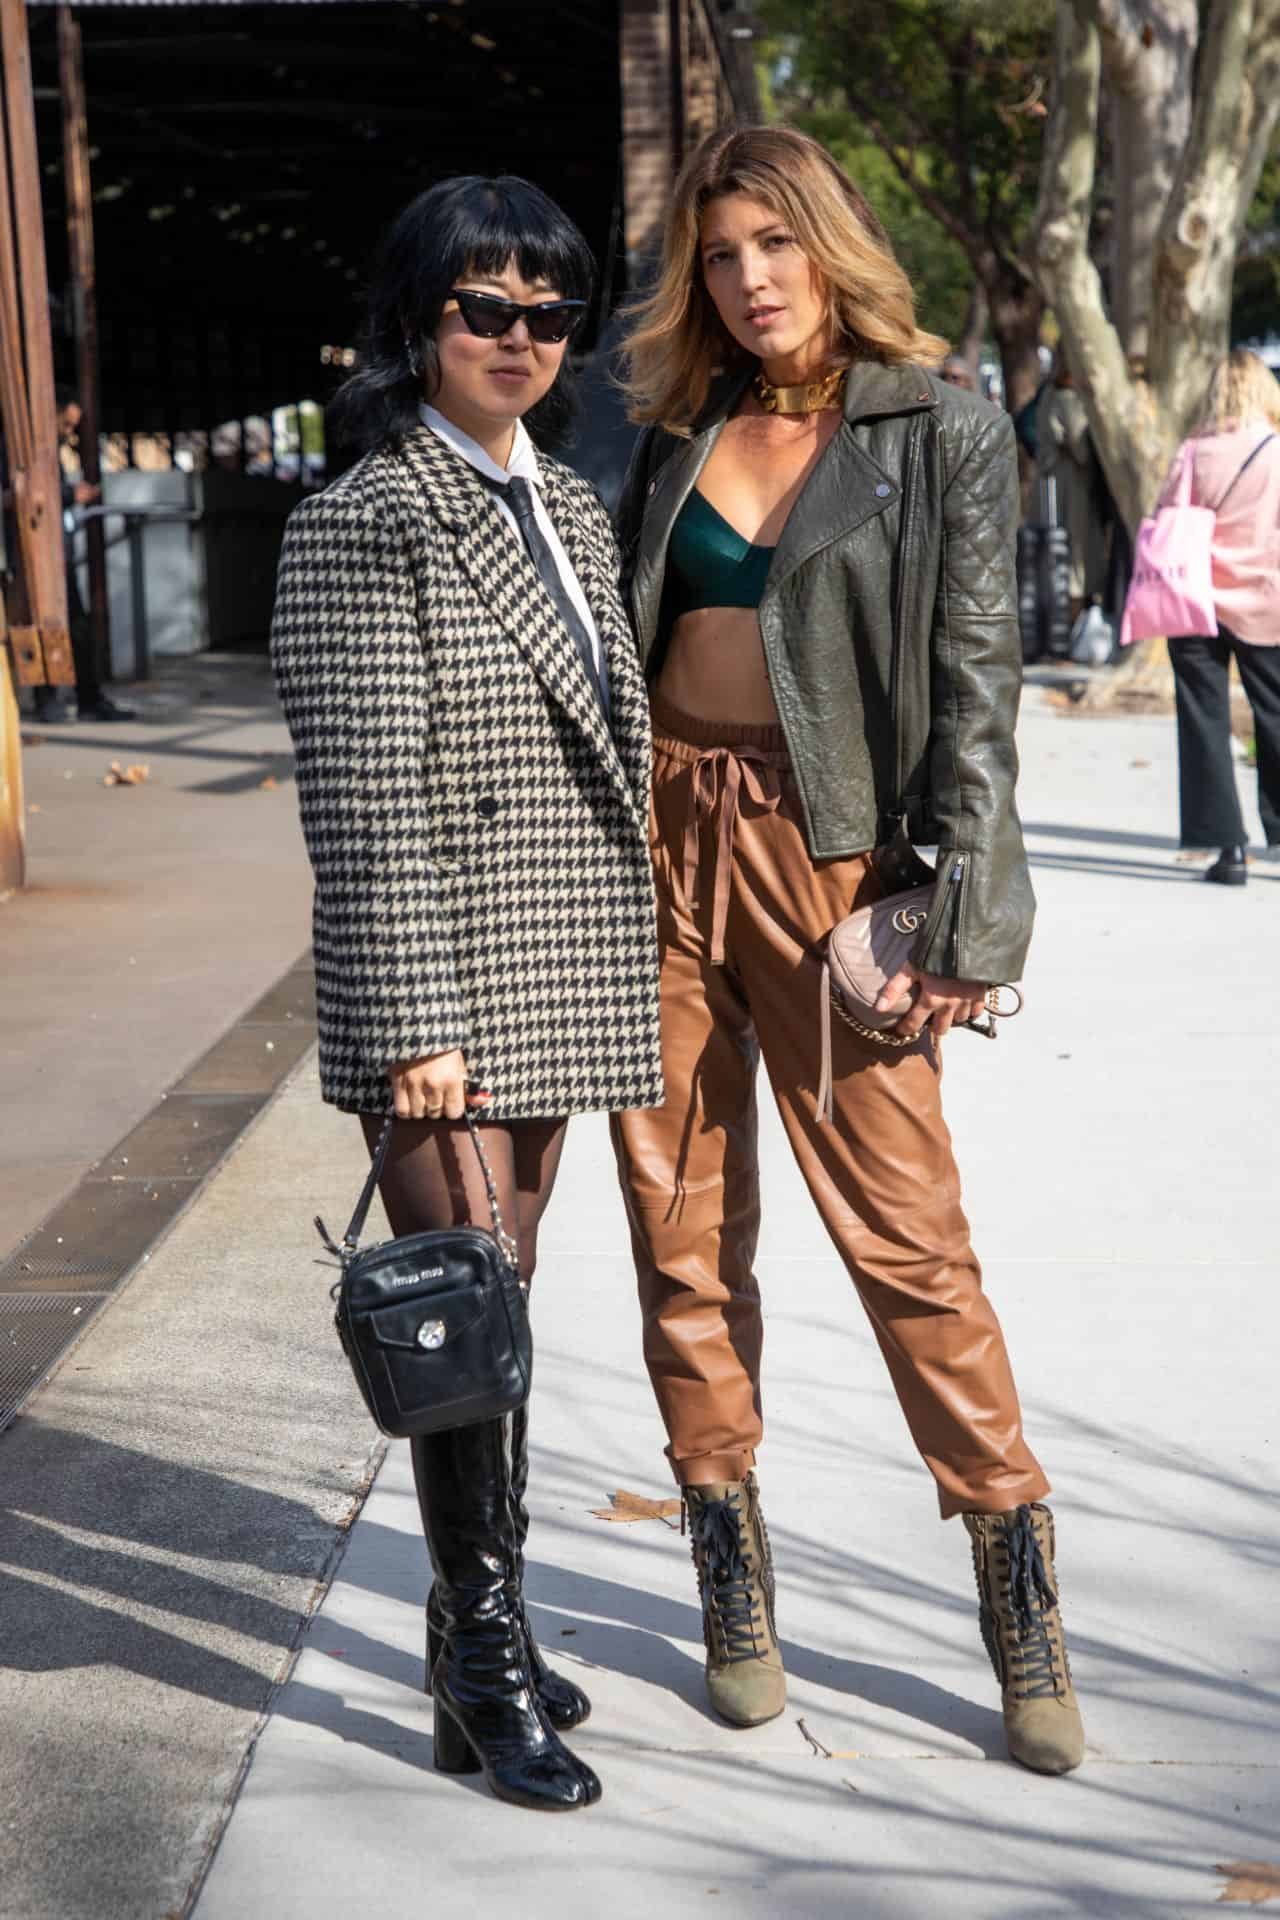 Tanja Gacic at Afterpay Australian Fashion Week in Sydney